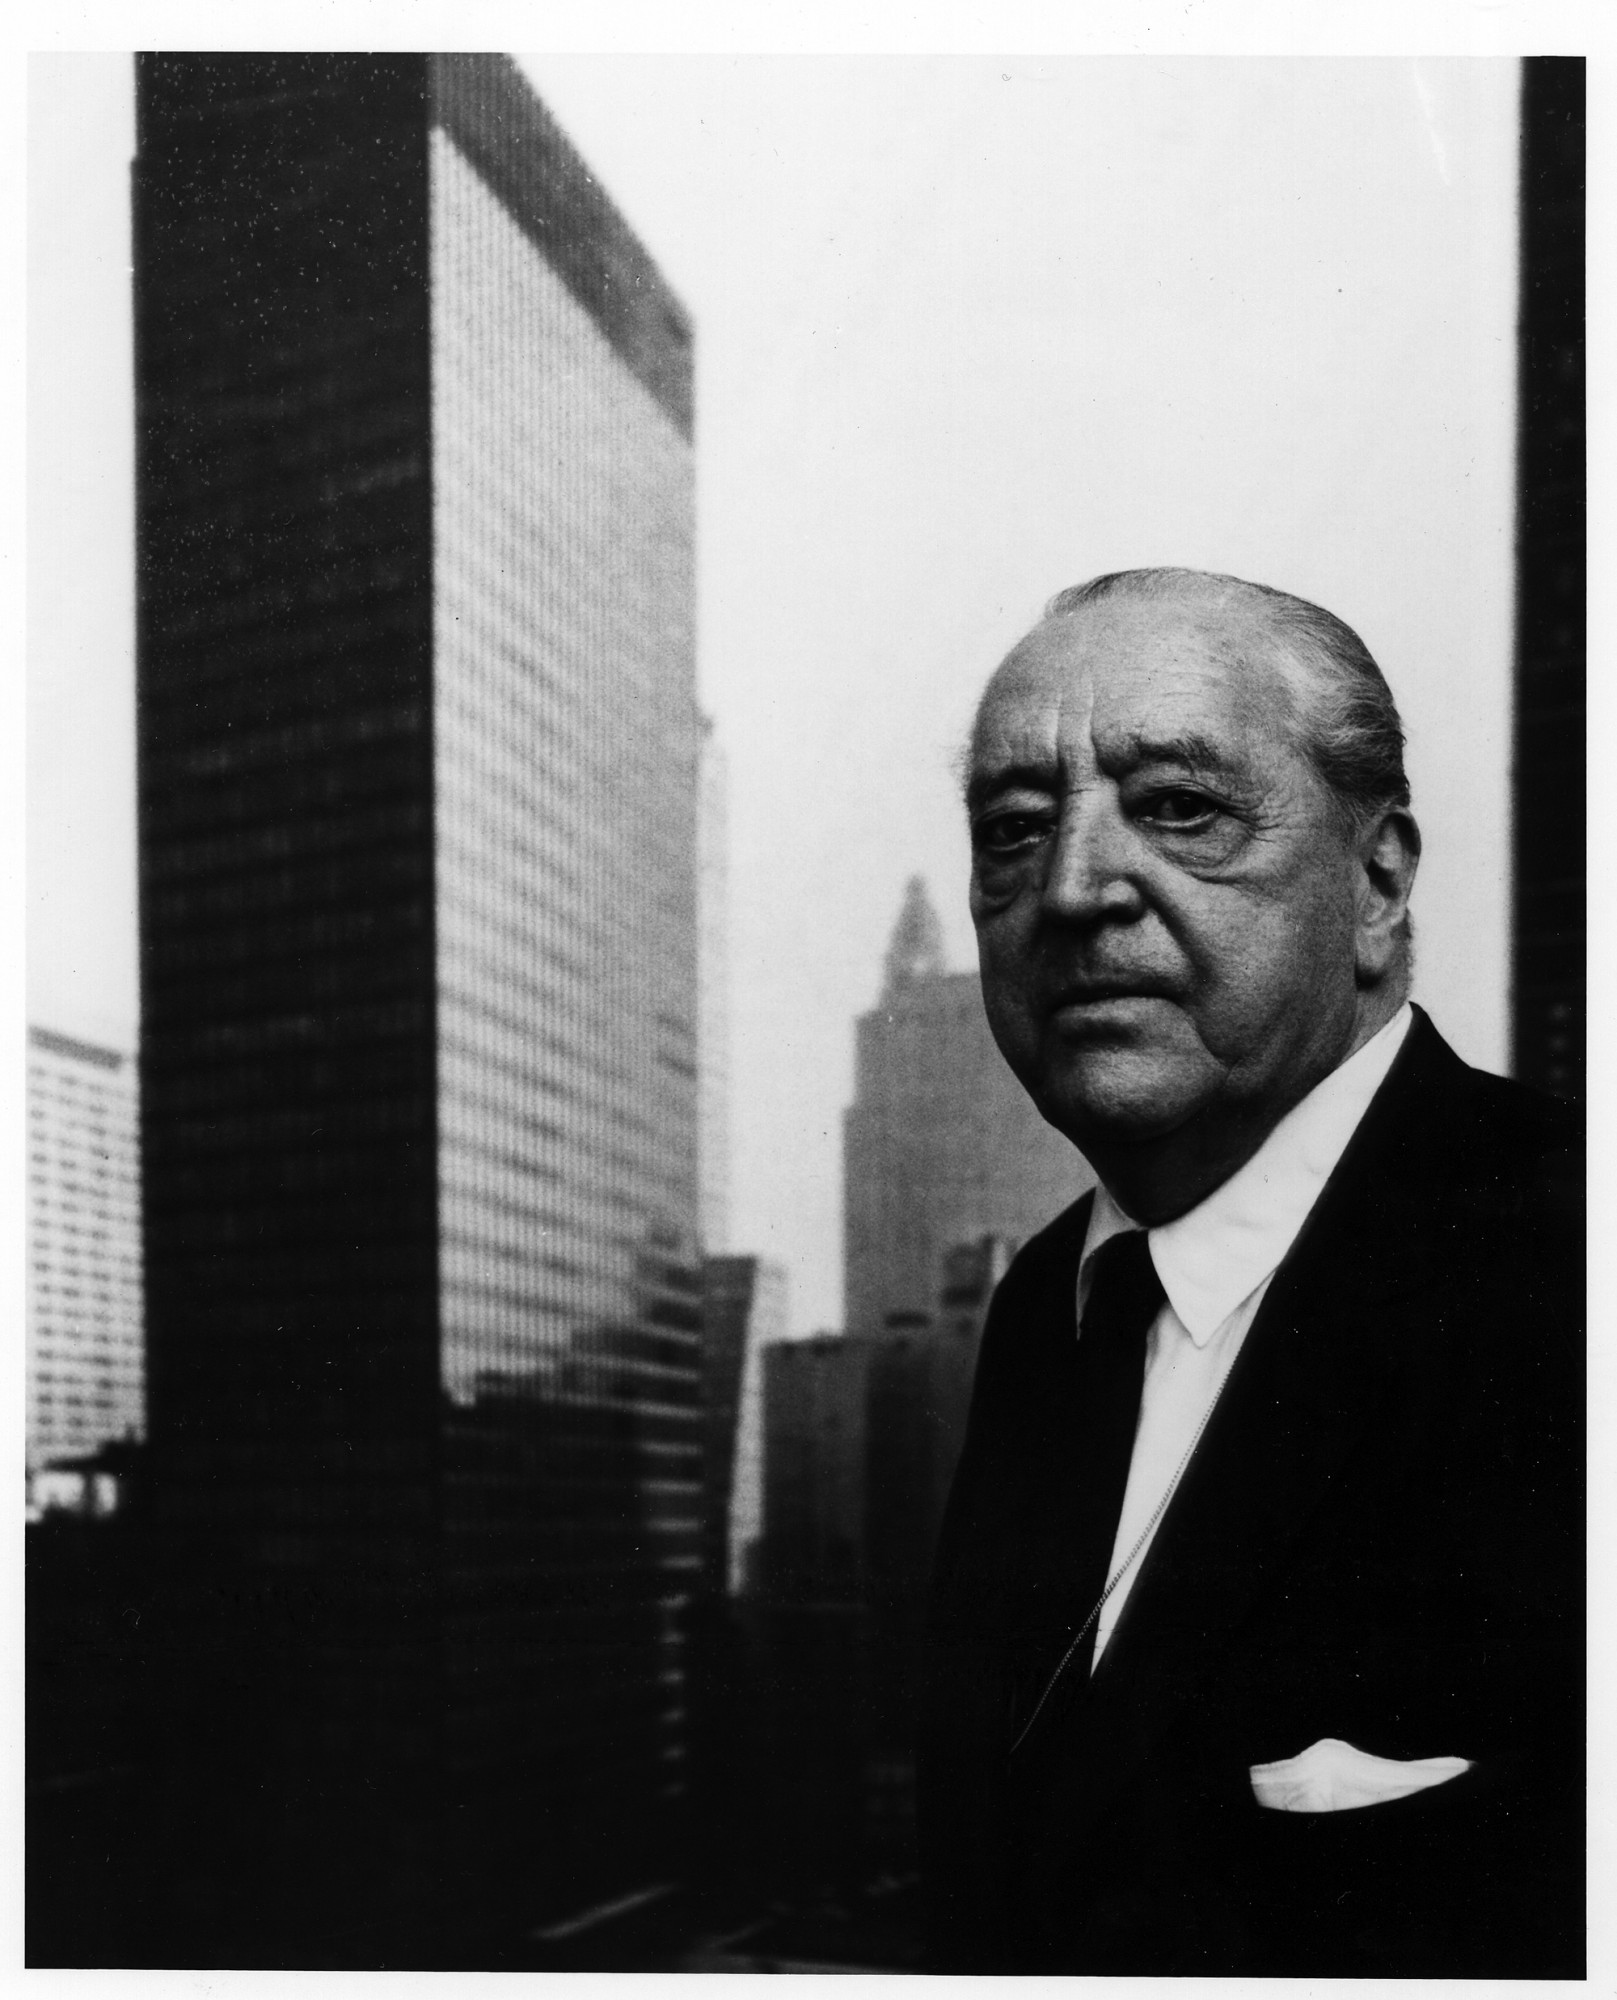 book club mies van der rohe a critical biography programs events chicago architecture. Black Bedroom Furniture Sets. Home Design Ideas